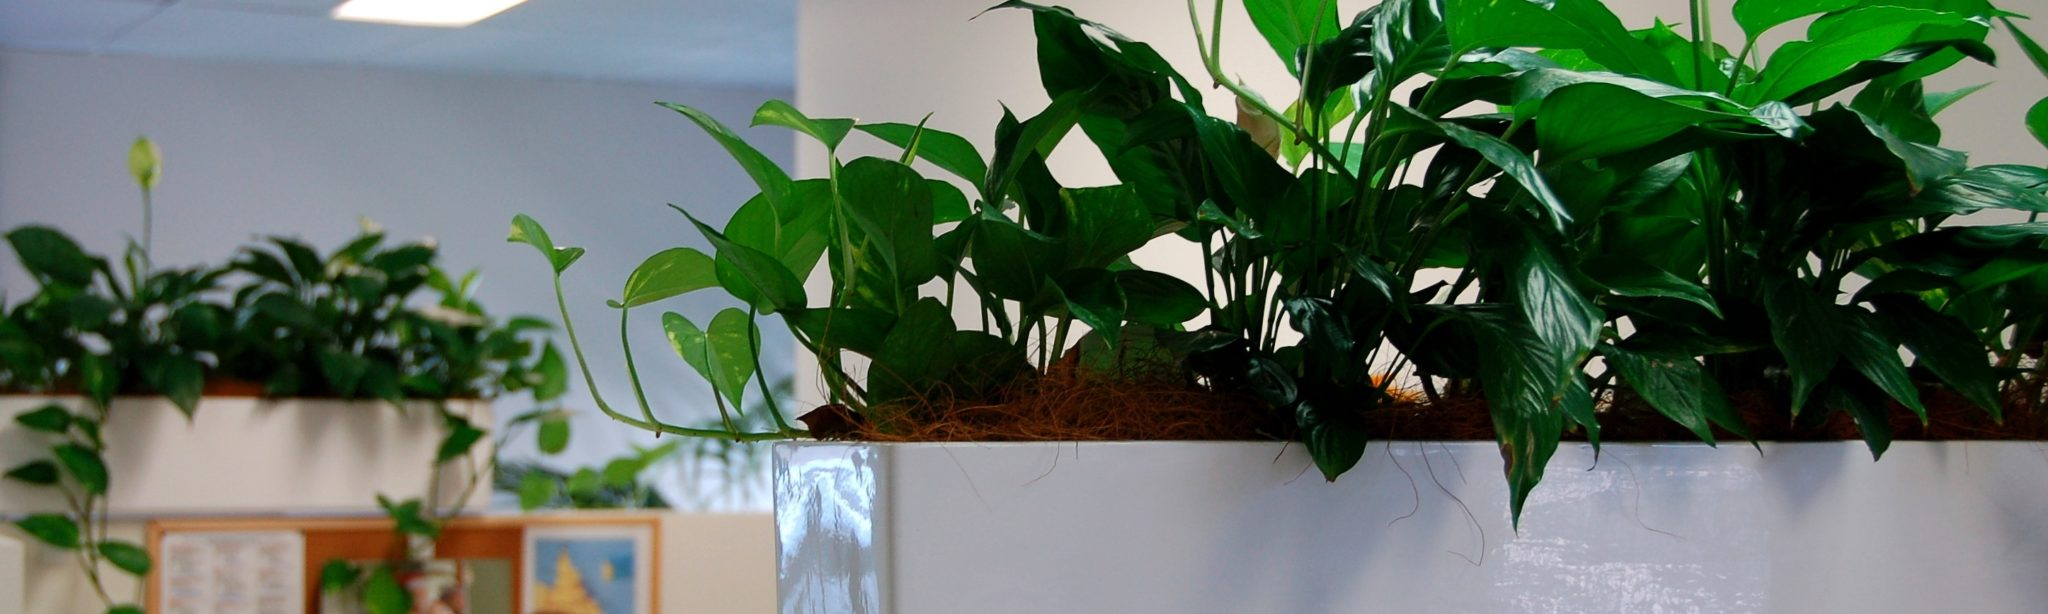 White Partition troughs with pothos hanging over the edge